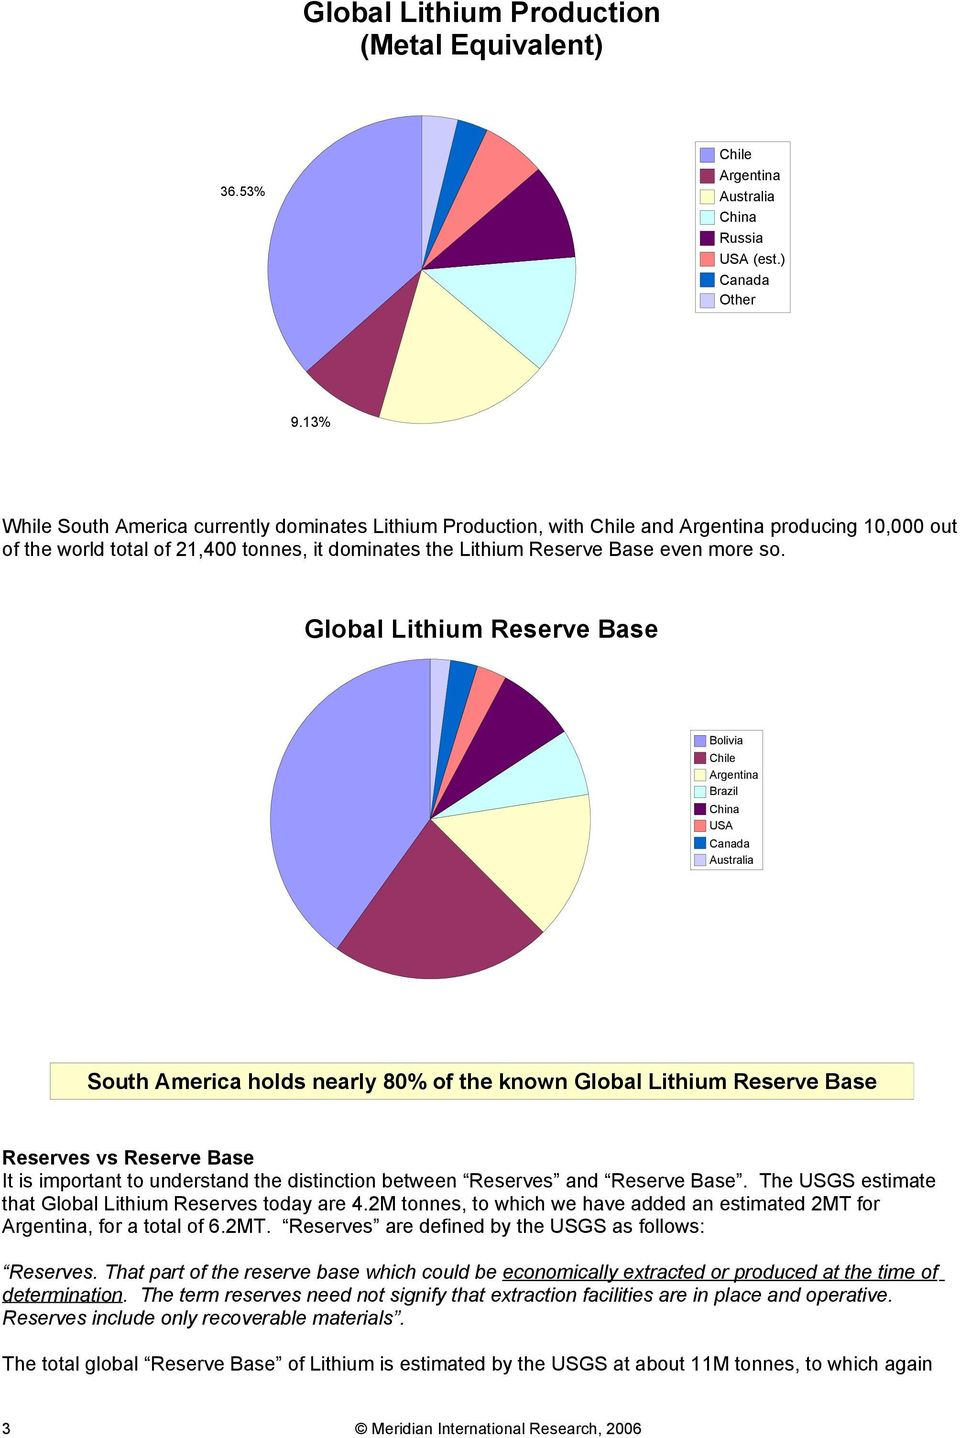 Global Lithium Reserve Base Bolivia Chile Argentina Brazil China USA Canada Australia South America holds nearly 80% of the known Global Lithium Reserve Base Reserves vs Reserve Base It is important